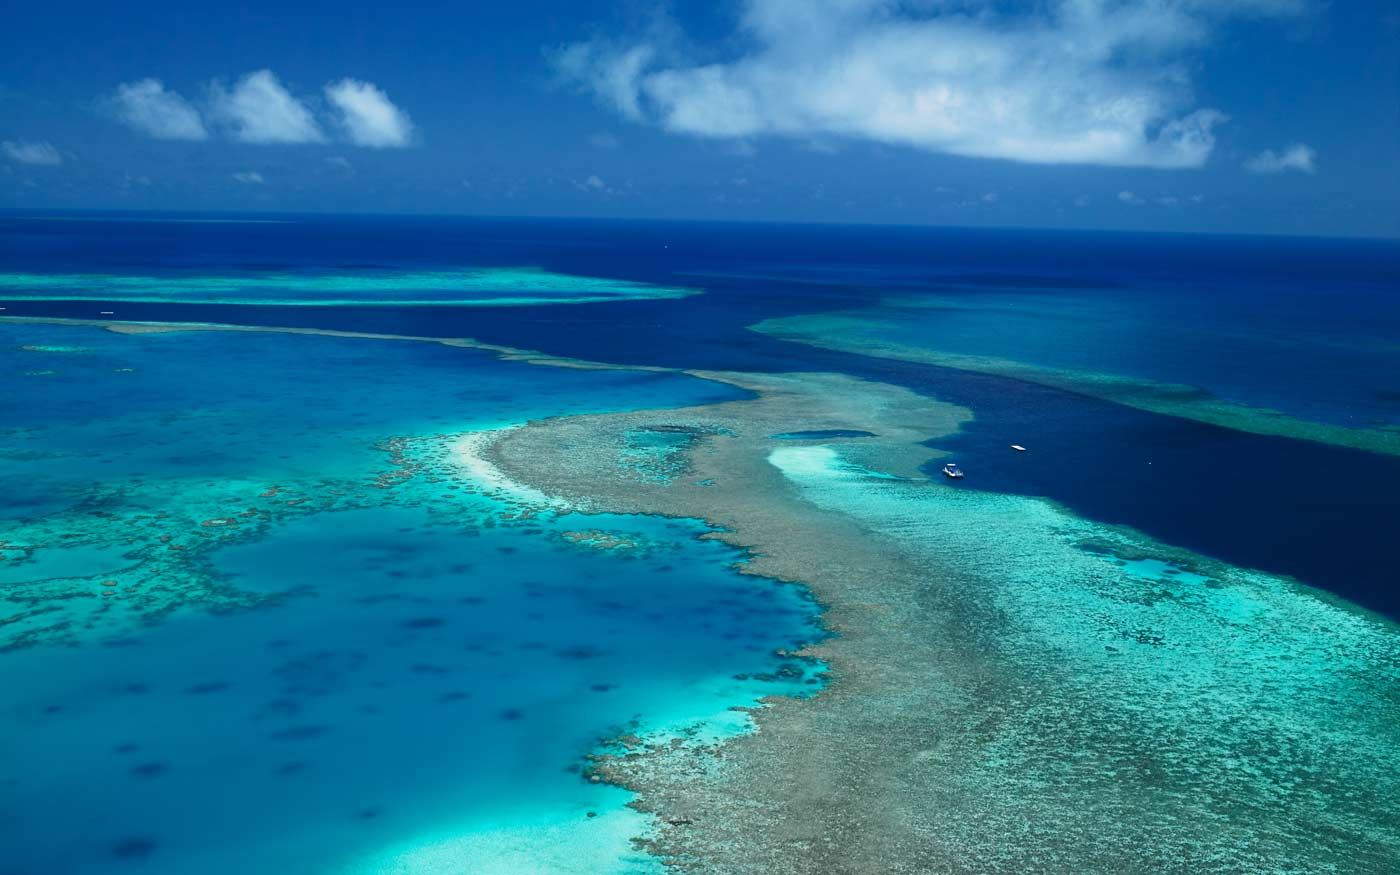 scenery-great-barrier-reef-aerial.jpg